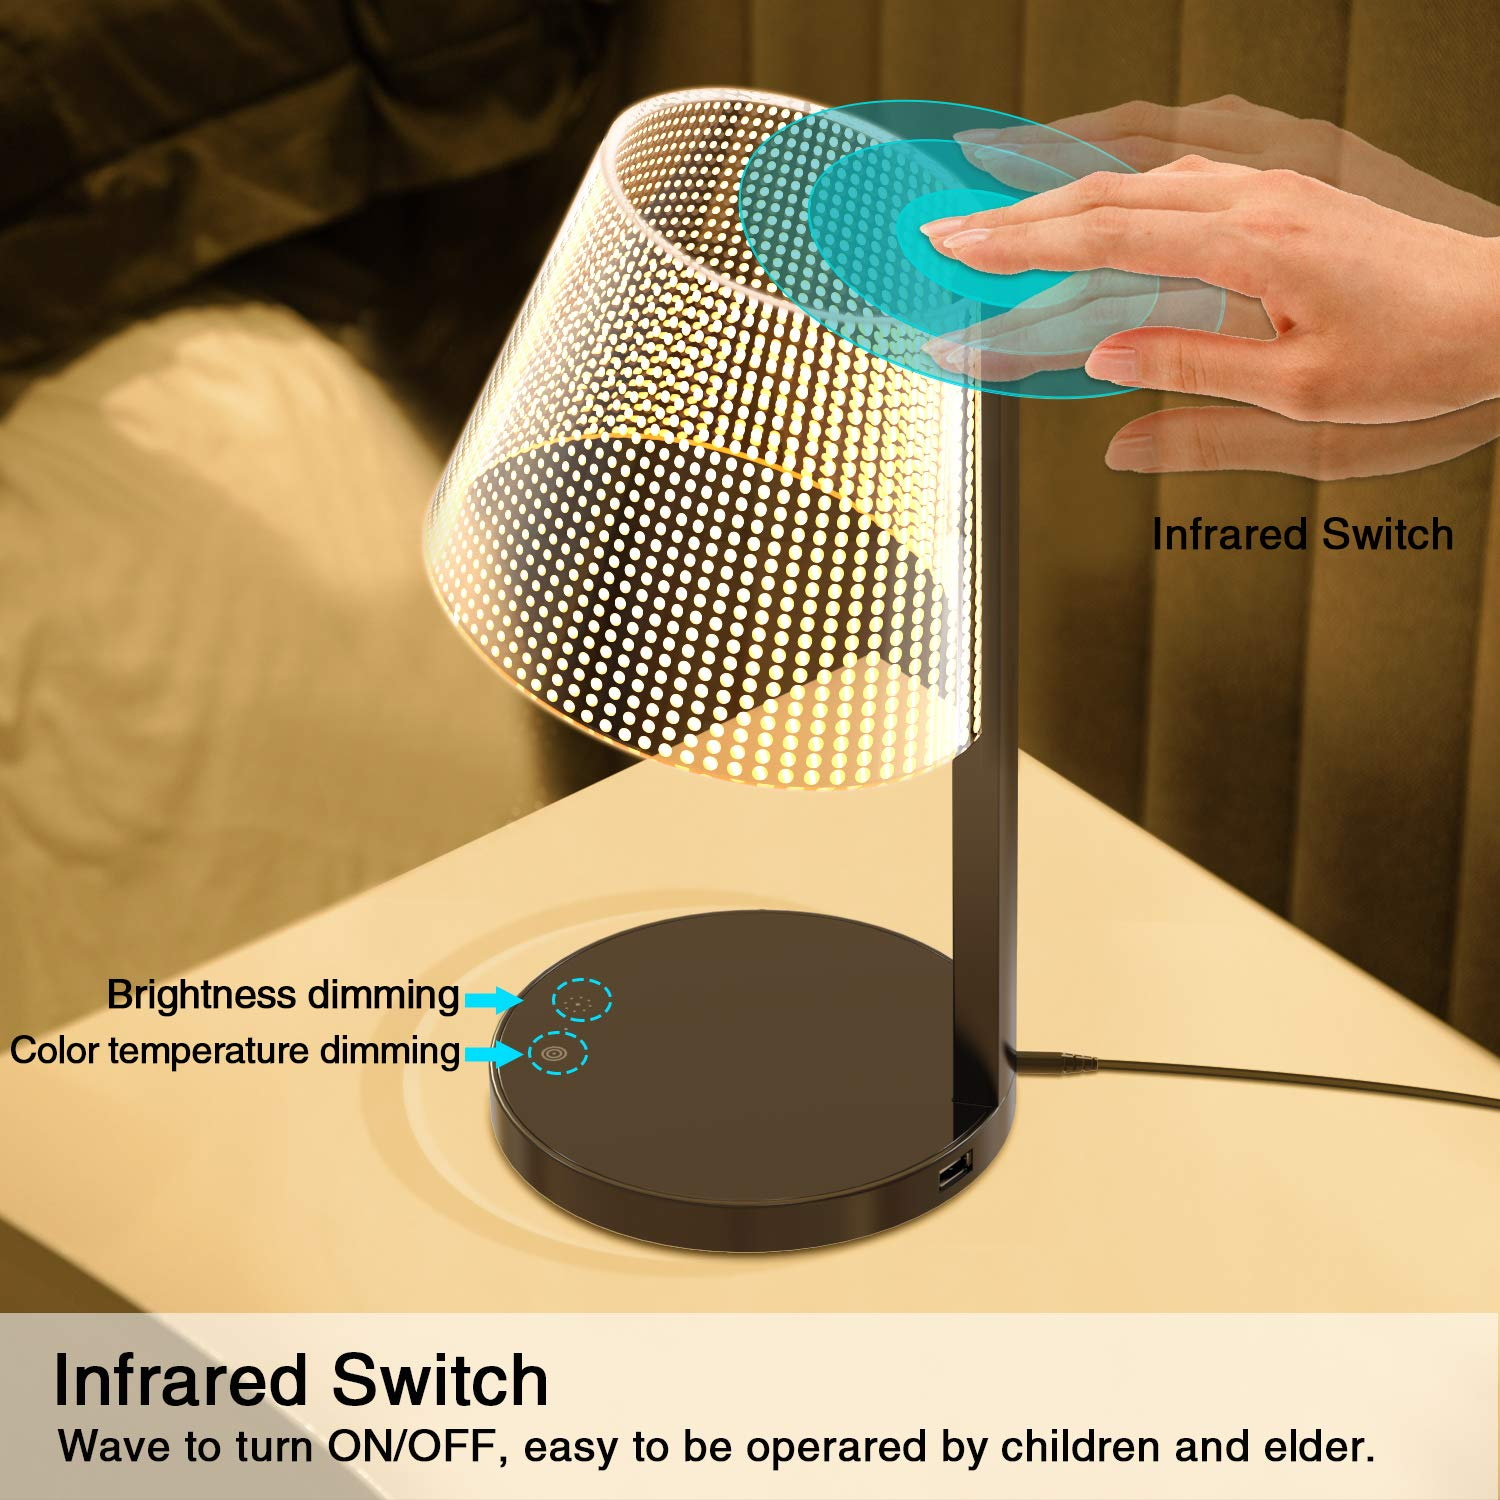 LED Table Lamp, Above Lights 7W Office Dimmable Desk Light with 10W Wireless Charger, Infrared Switch, Hidden Light Source, 5 Colors & Brightness, and USB Charging Port- Reddot Design Award by Above Lights (Image #3)